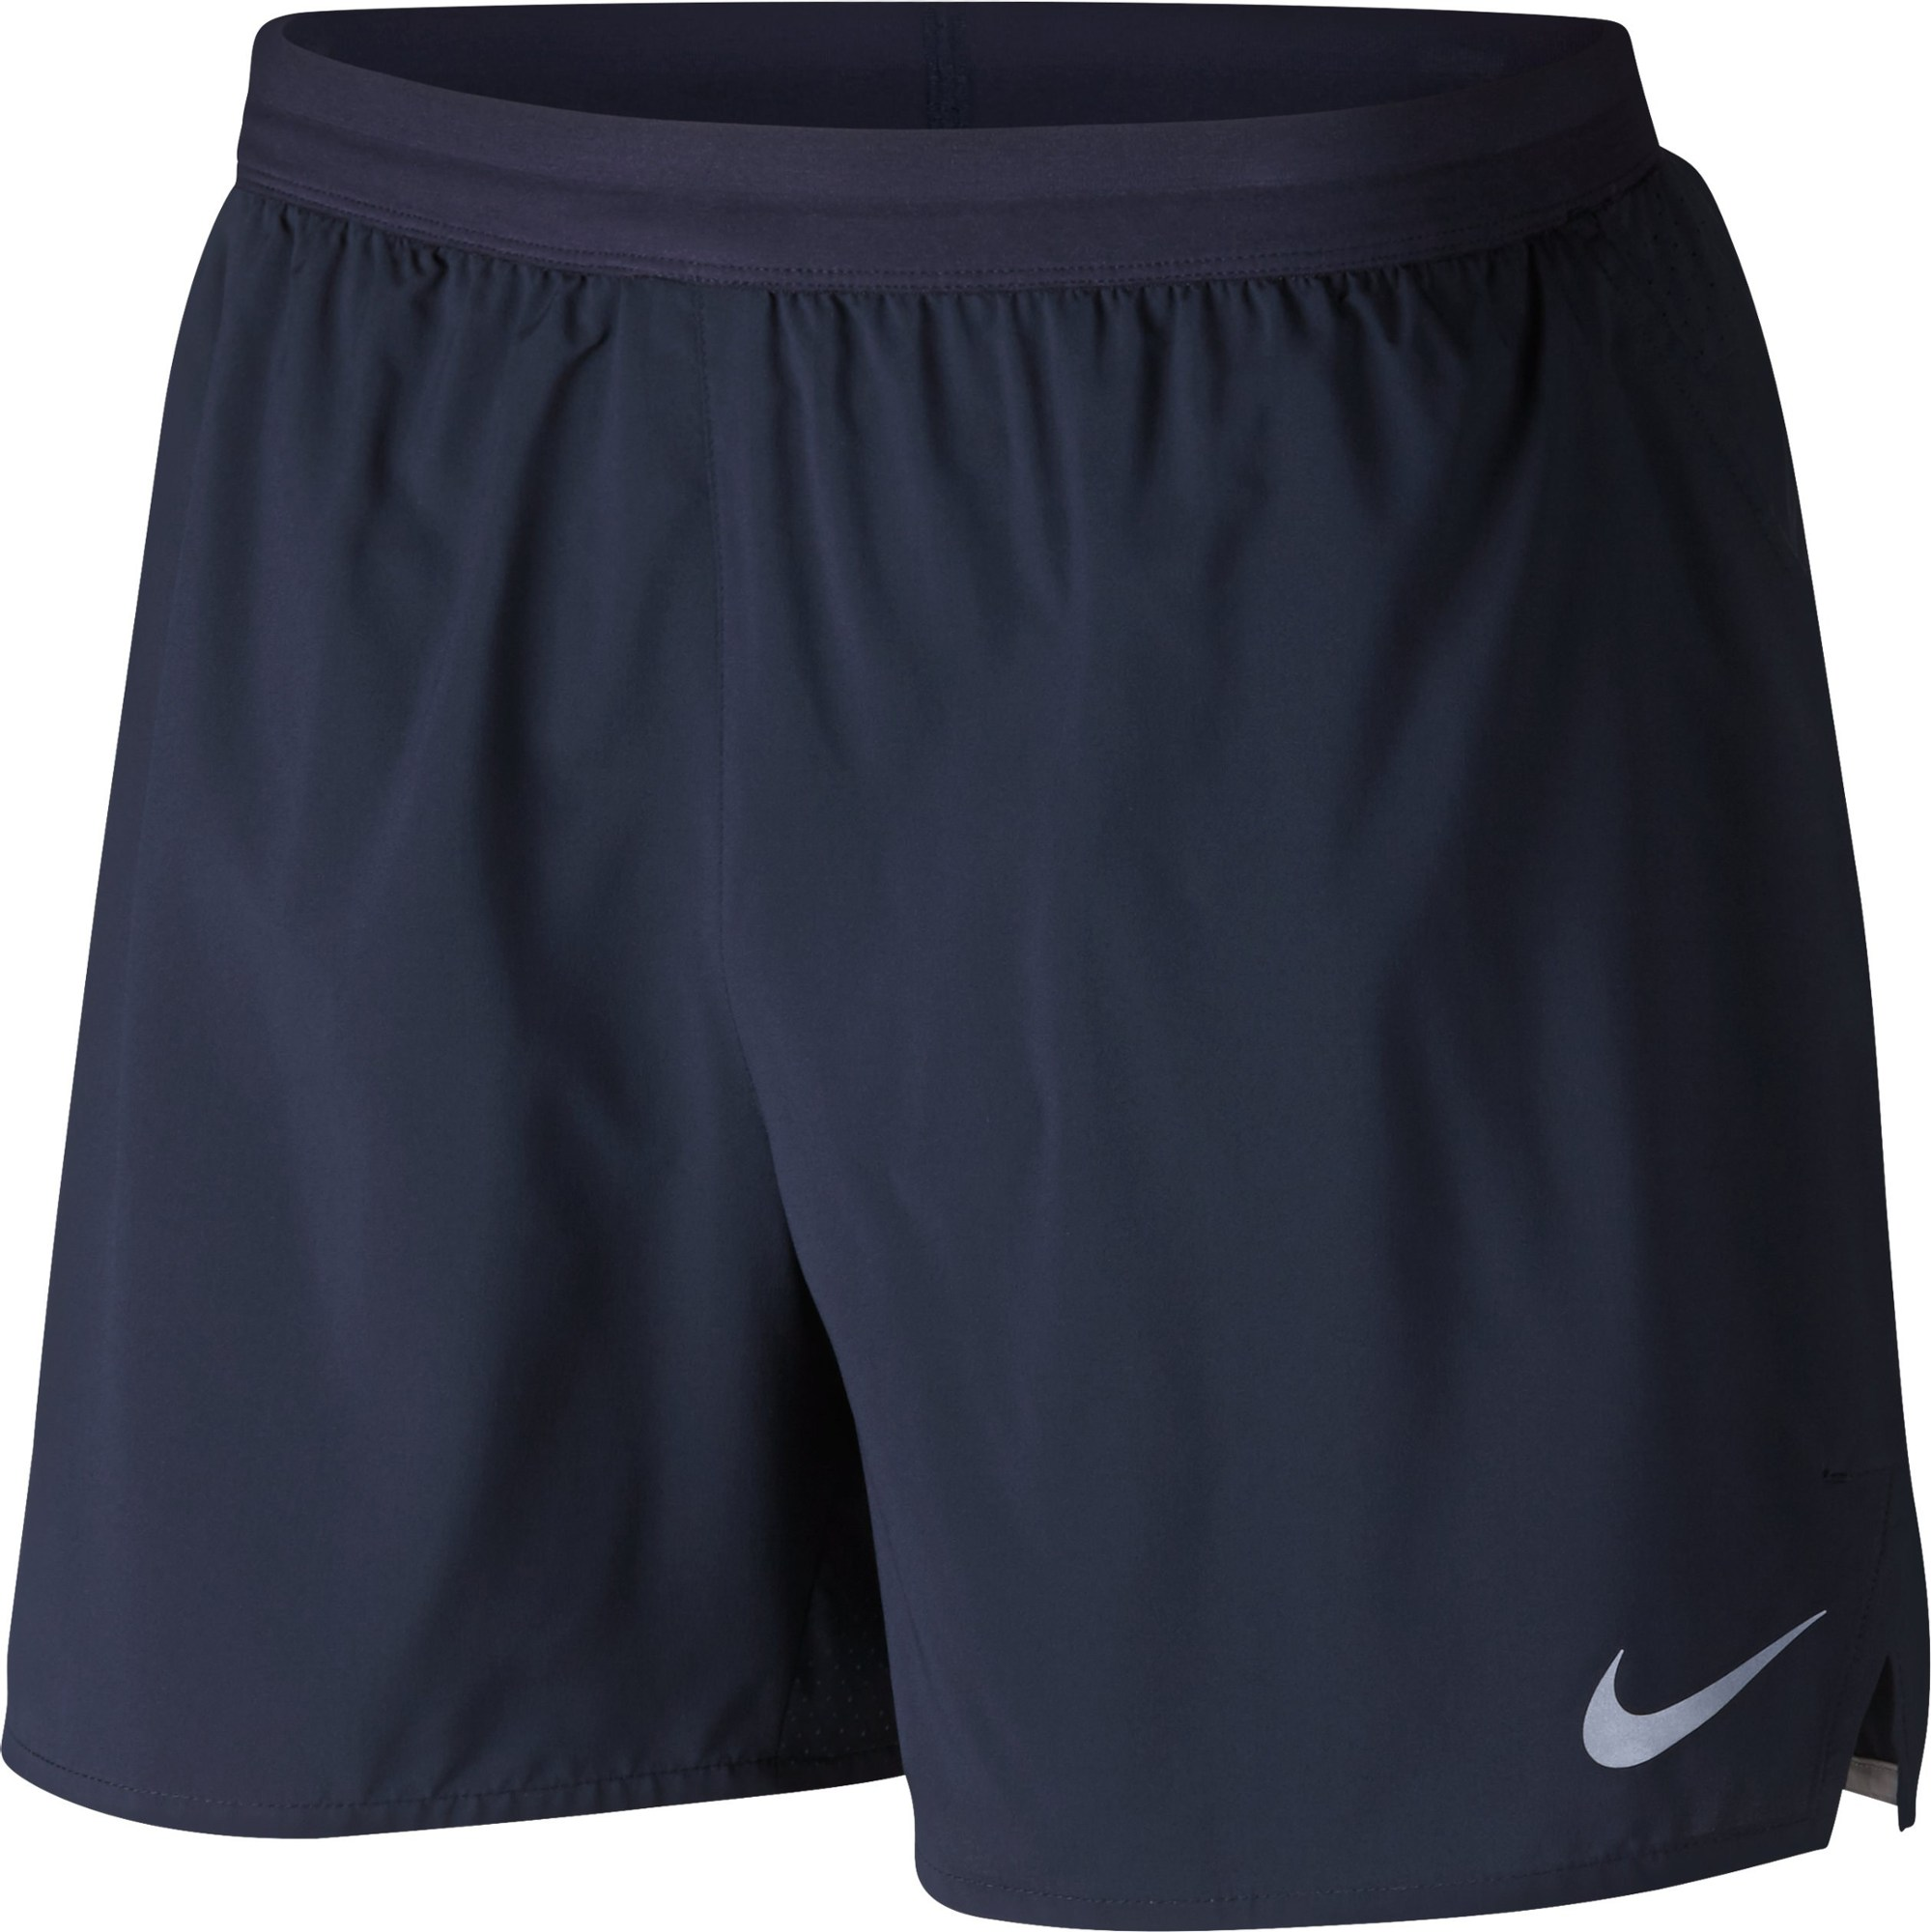 Nike Flex Distance Shorts - Men's